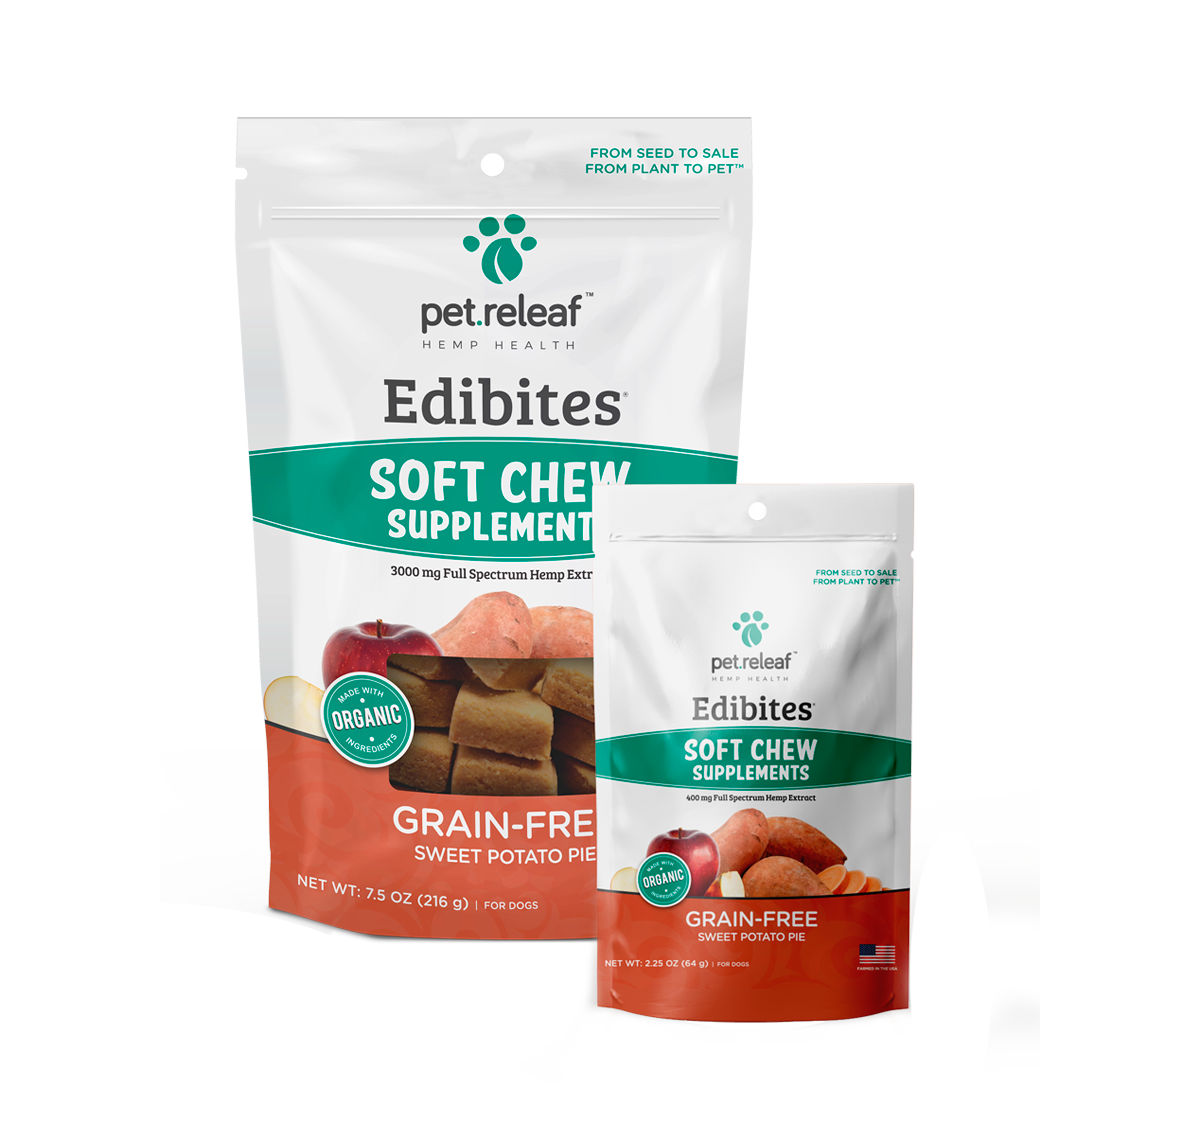 Pet Releaf Pet Releaf Edibites Soft Chew Sweet Pot Pie 7.5oz Product Image